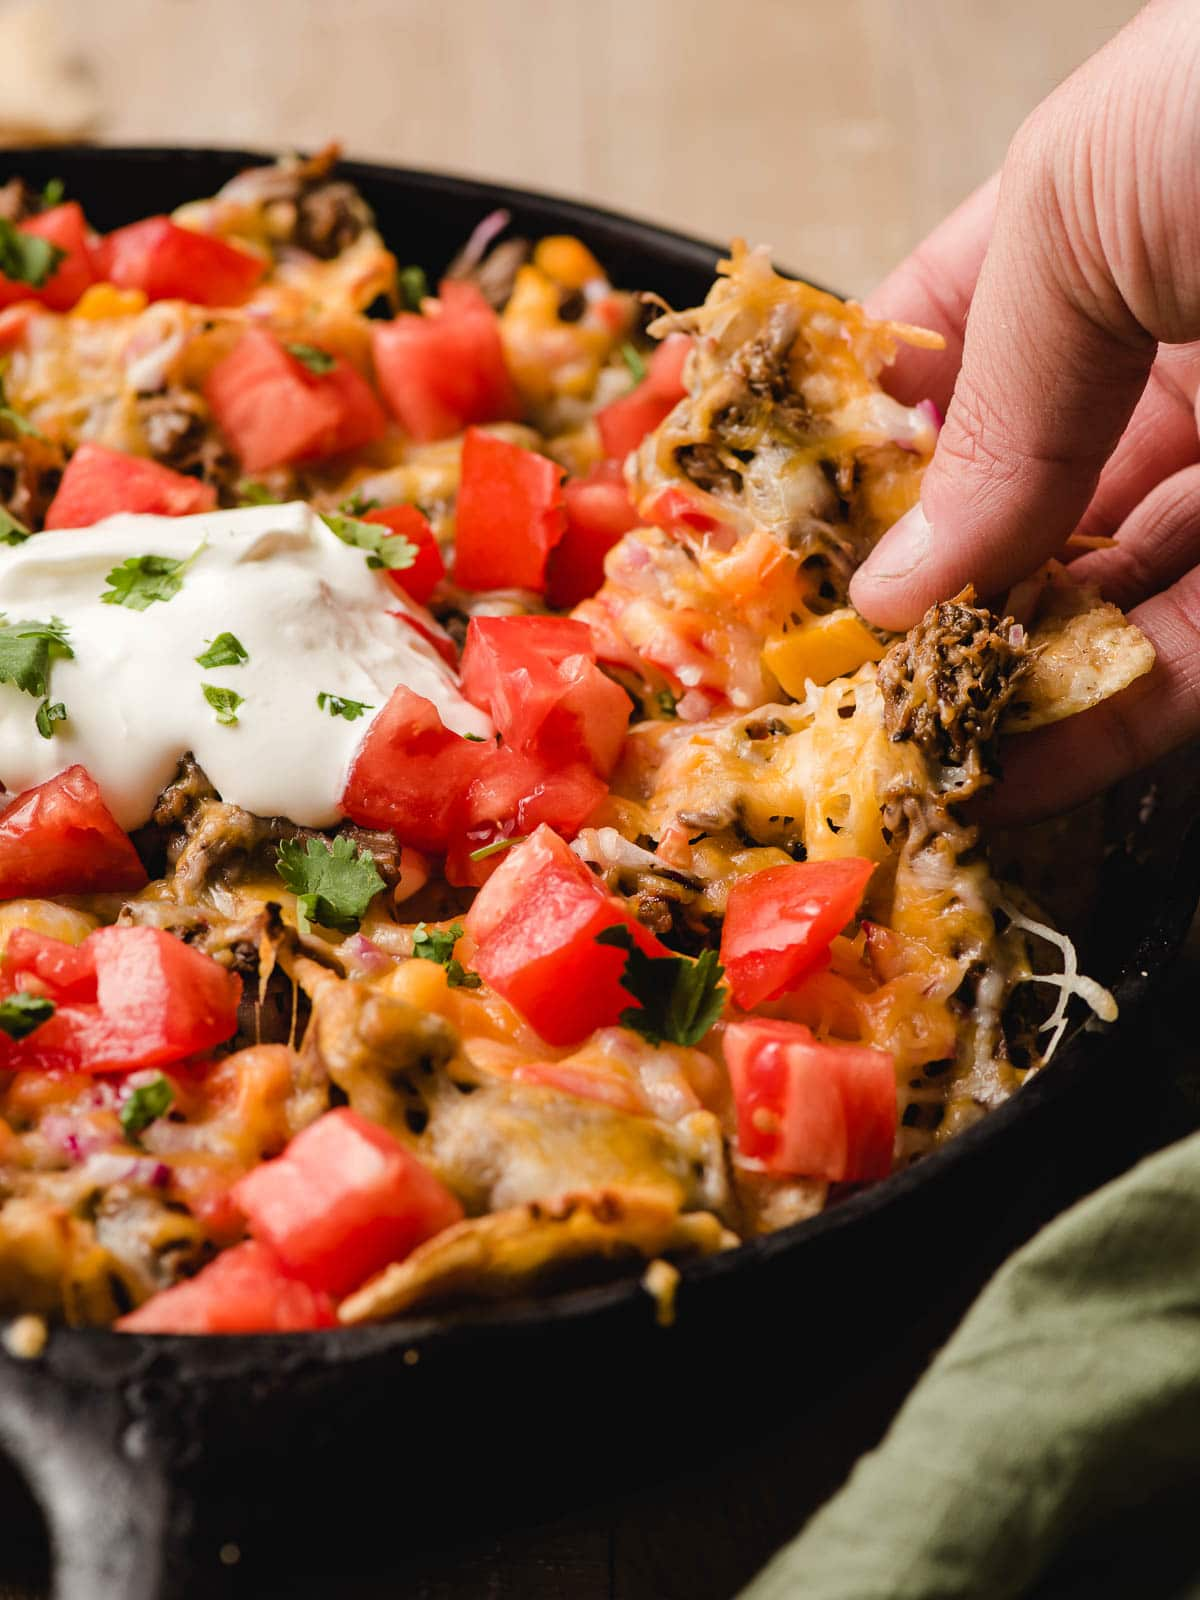 Hand grabbing a nacho from a cast iron skillet.